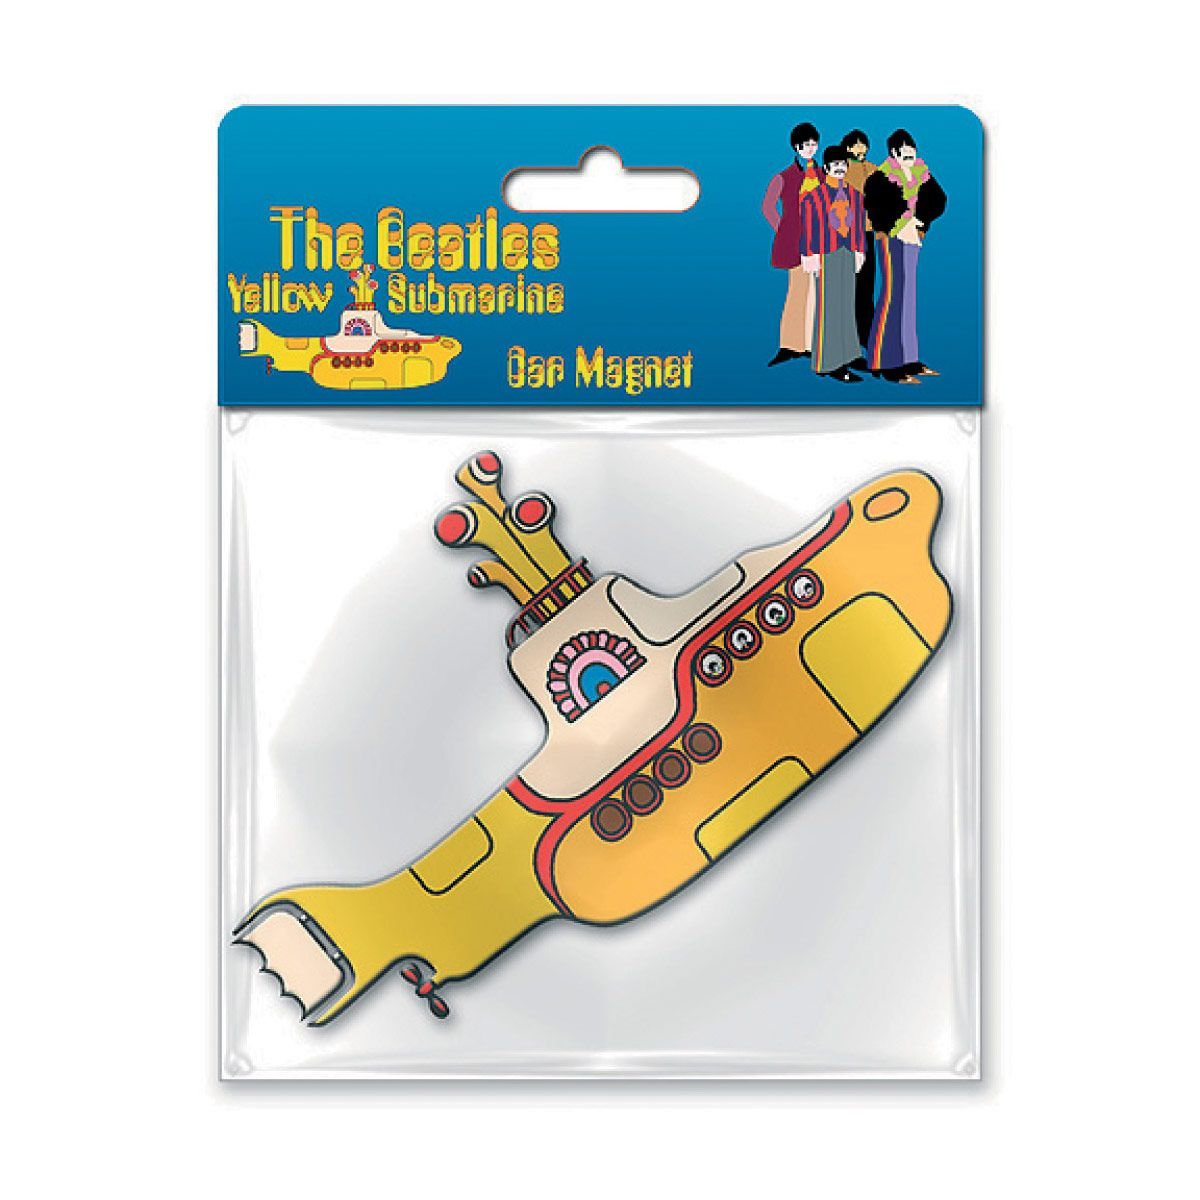 Imã Emborrachado The Beatles Yellow Submarine